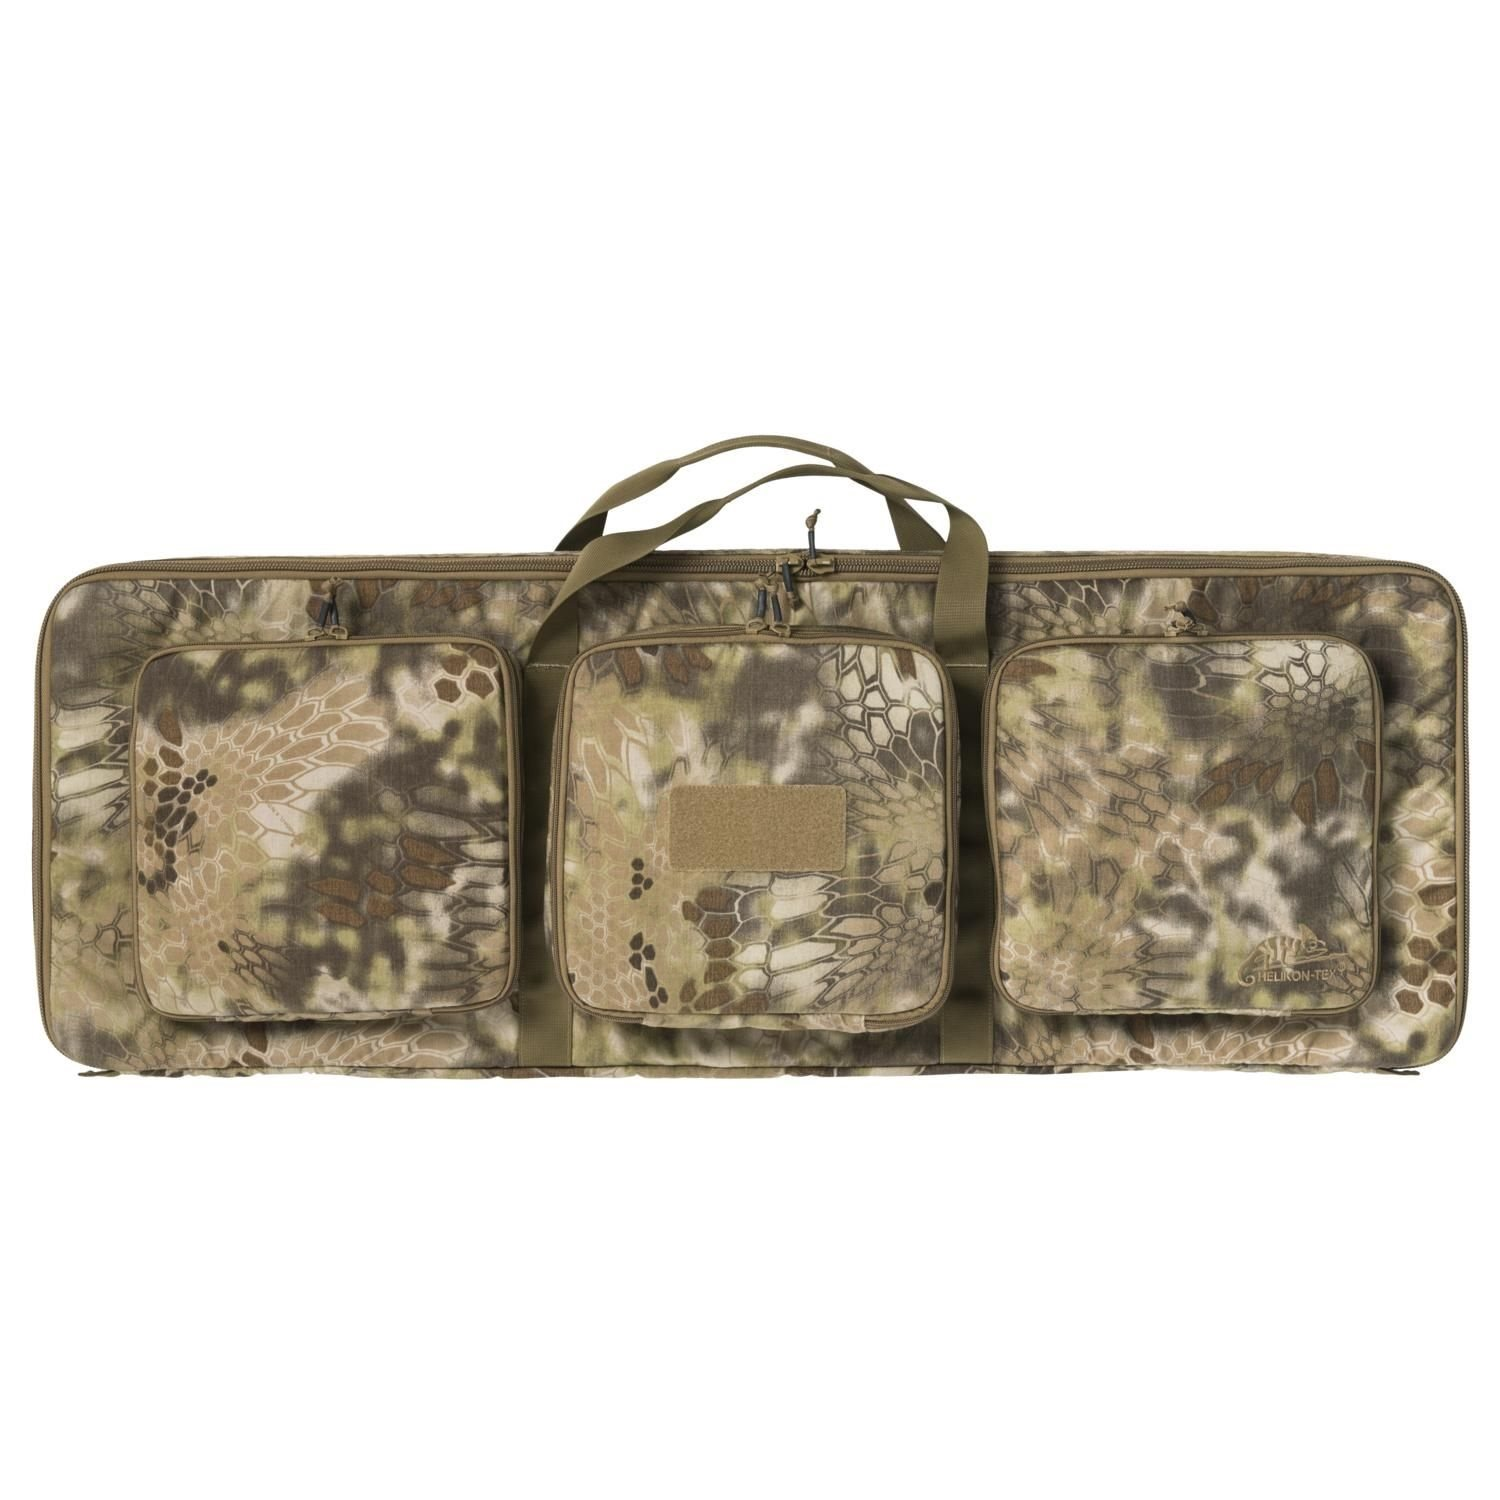 Puzdro na pušku RIFLE BAG 18® KRYPTEK HIGHLANDER™